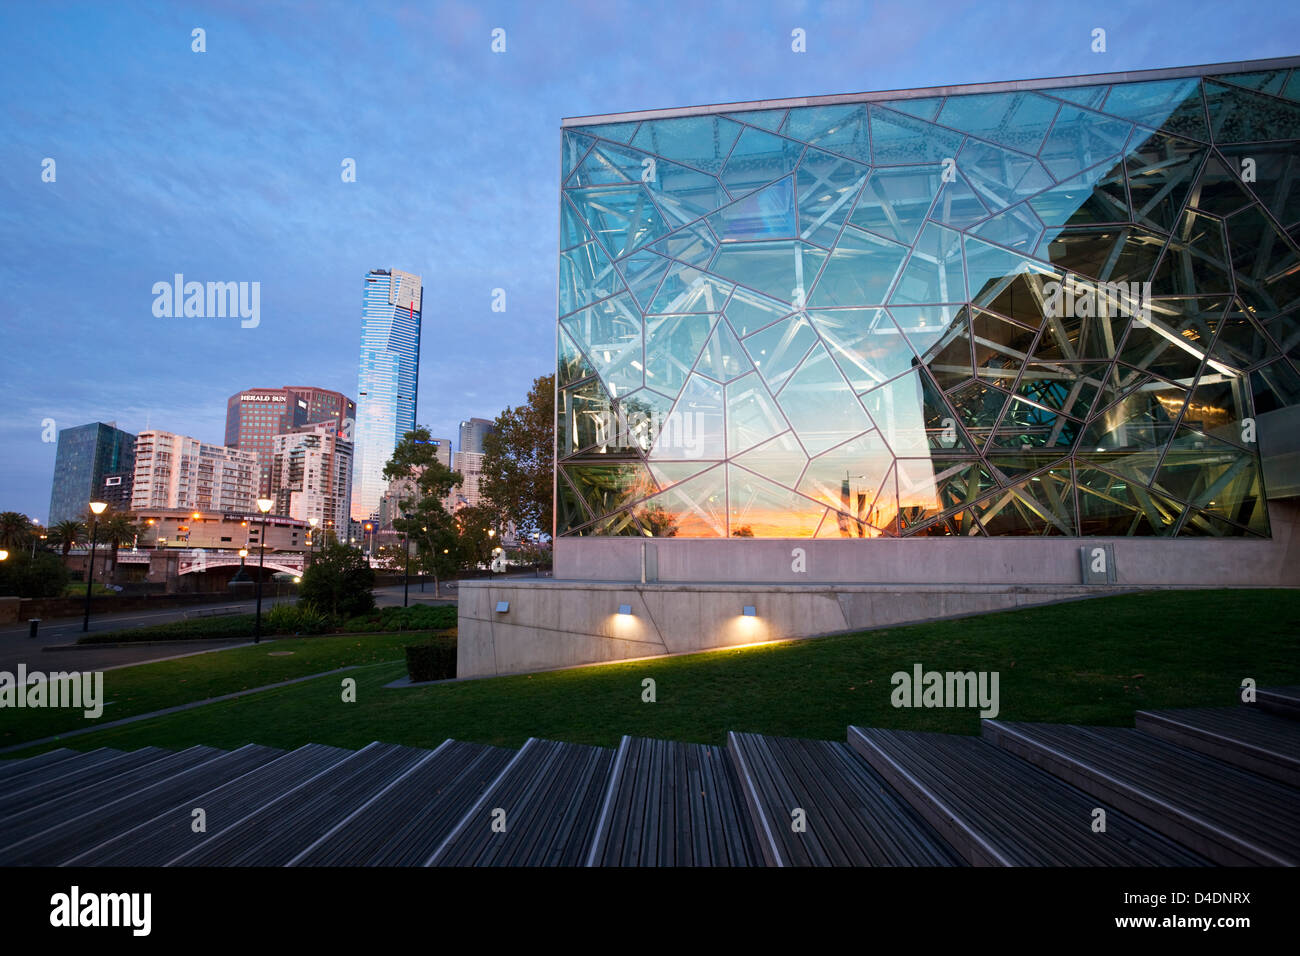 Architettura di Federation Square con l'Eureka Tower e Southbank in background. Melbourne, Victoria, Australia Immagini Stock